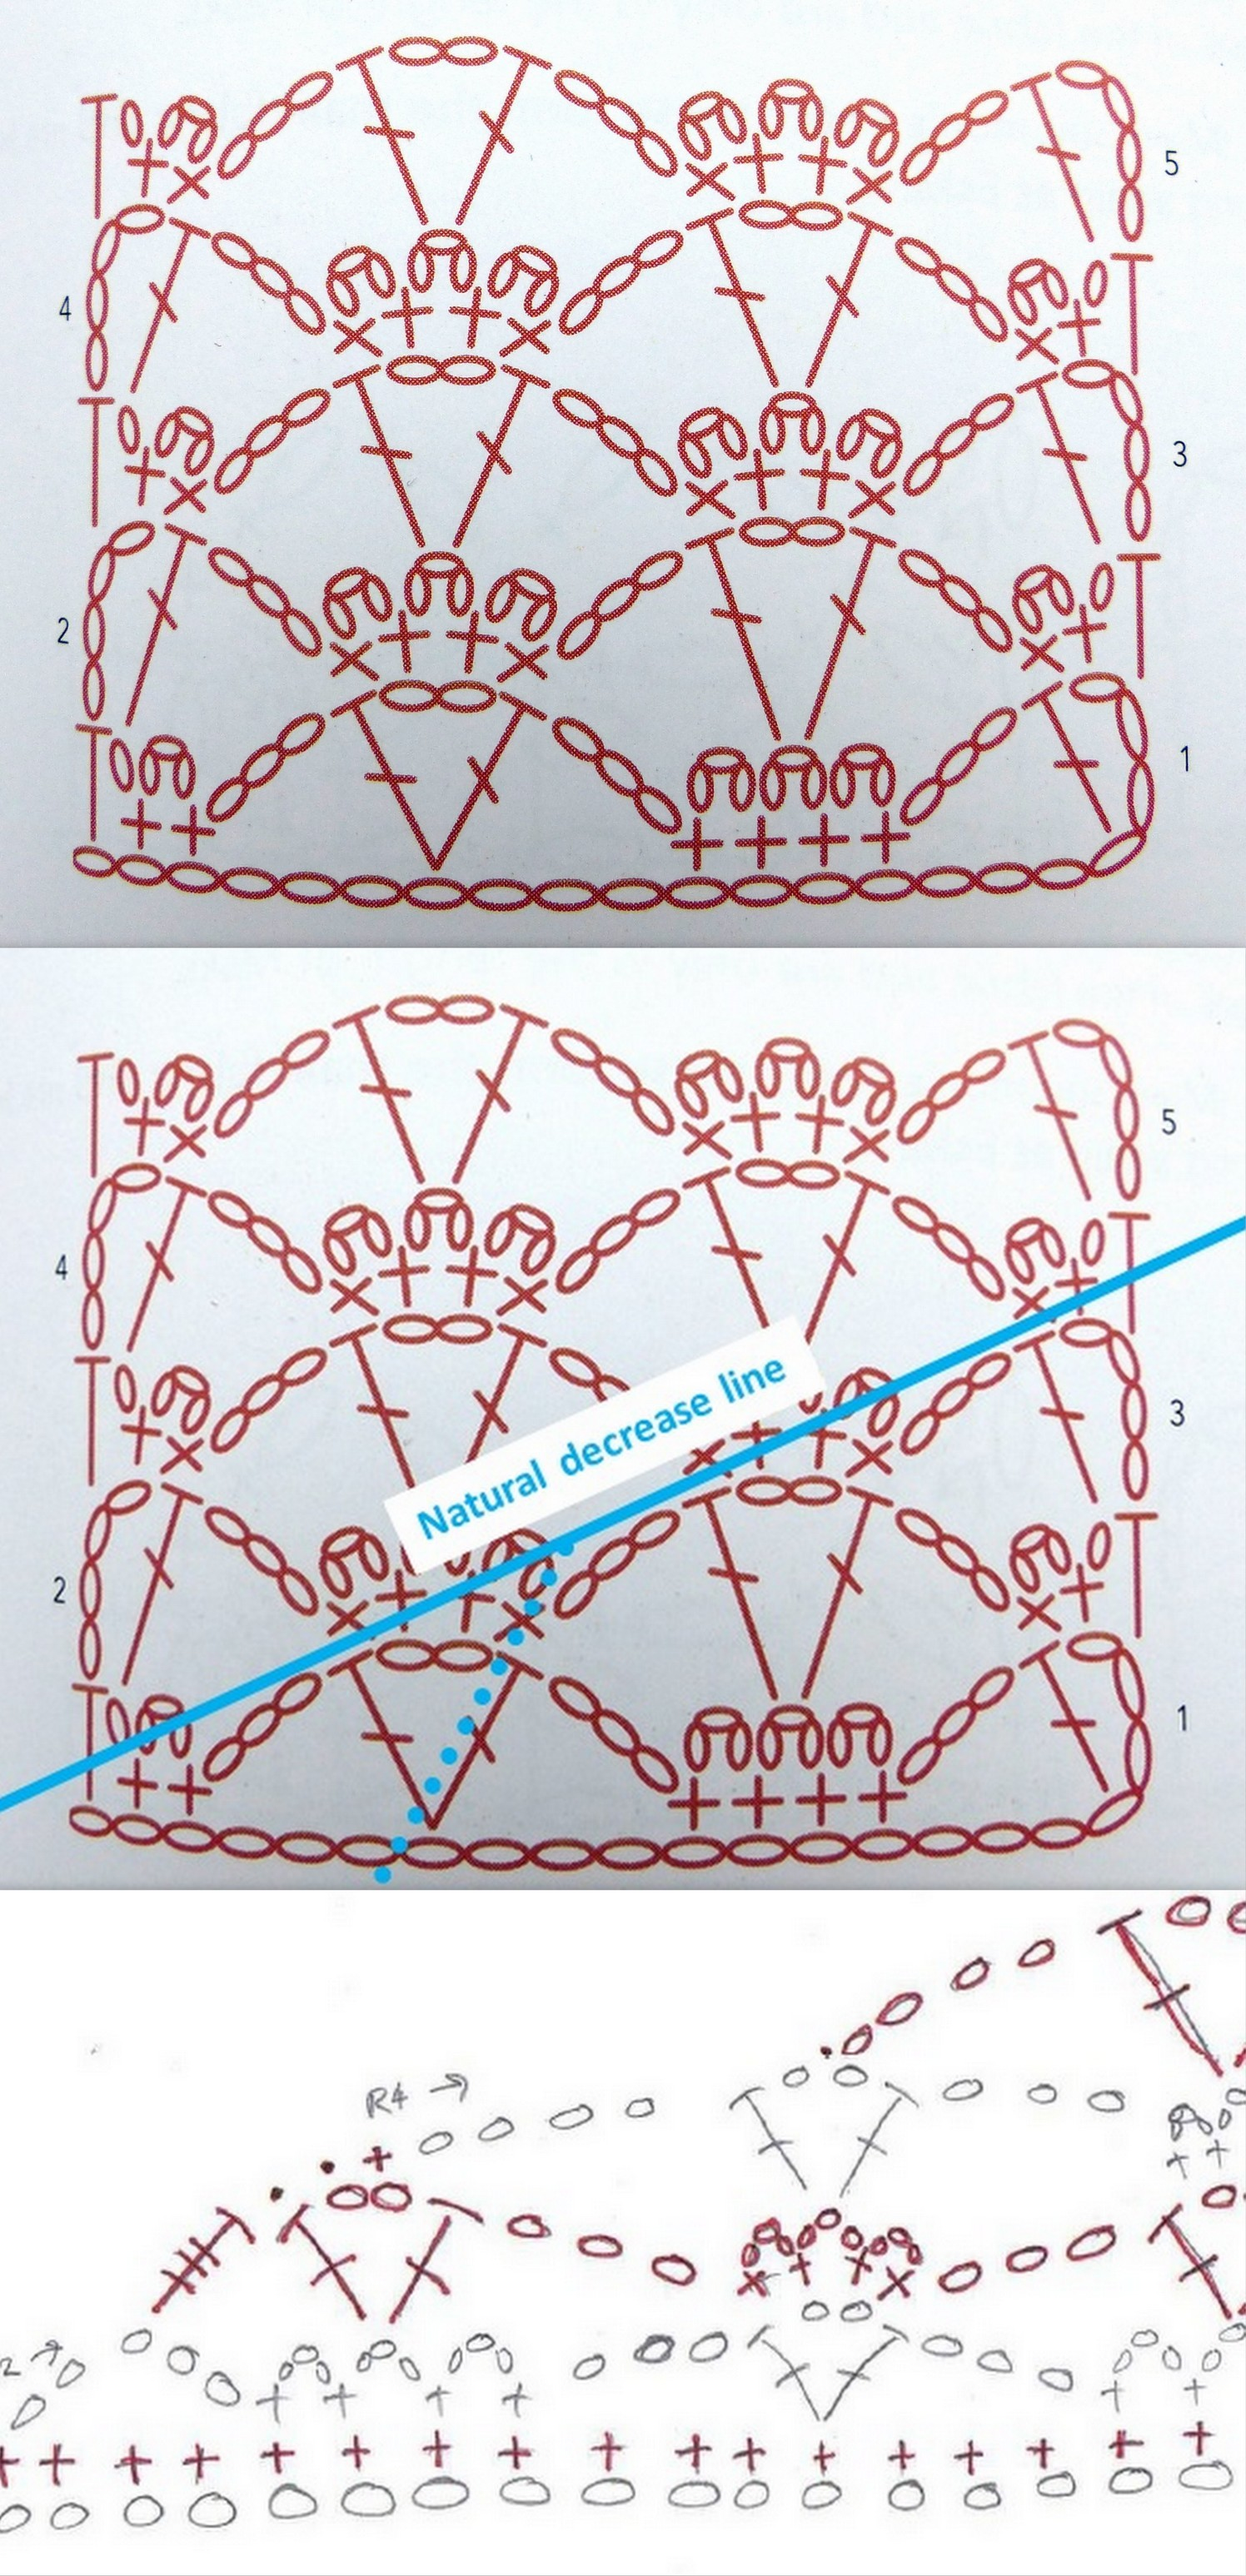 Crochet Stitches Decrease : How to increase and decrease in crochet stitch patterns - series by ...